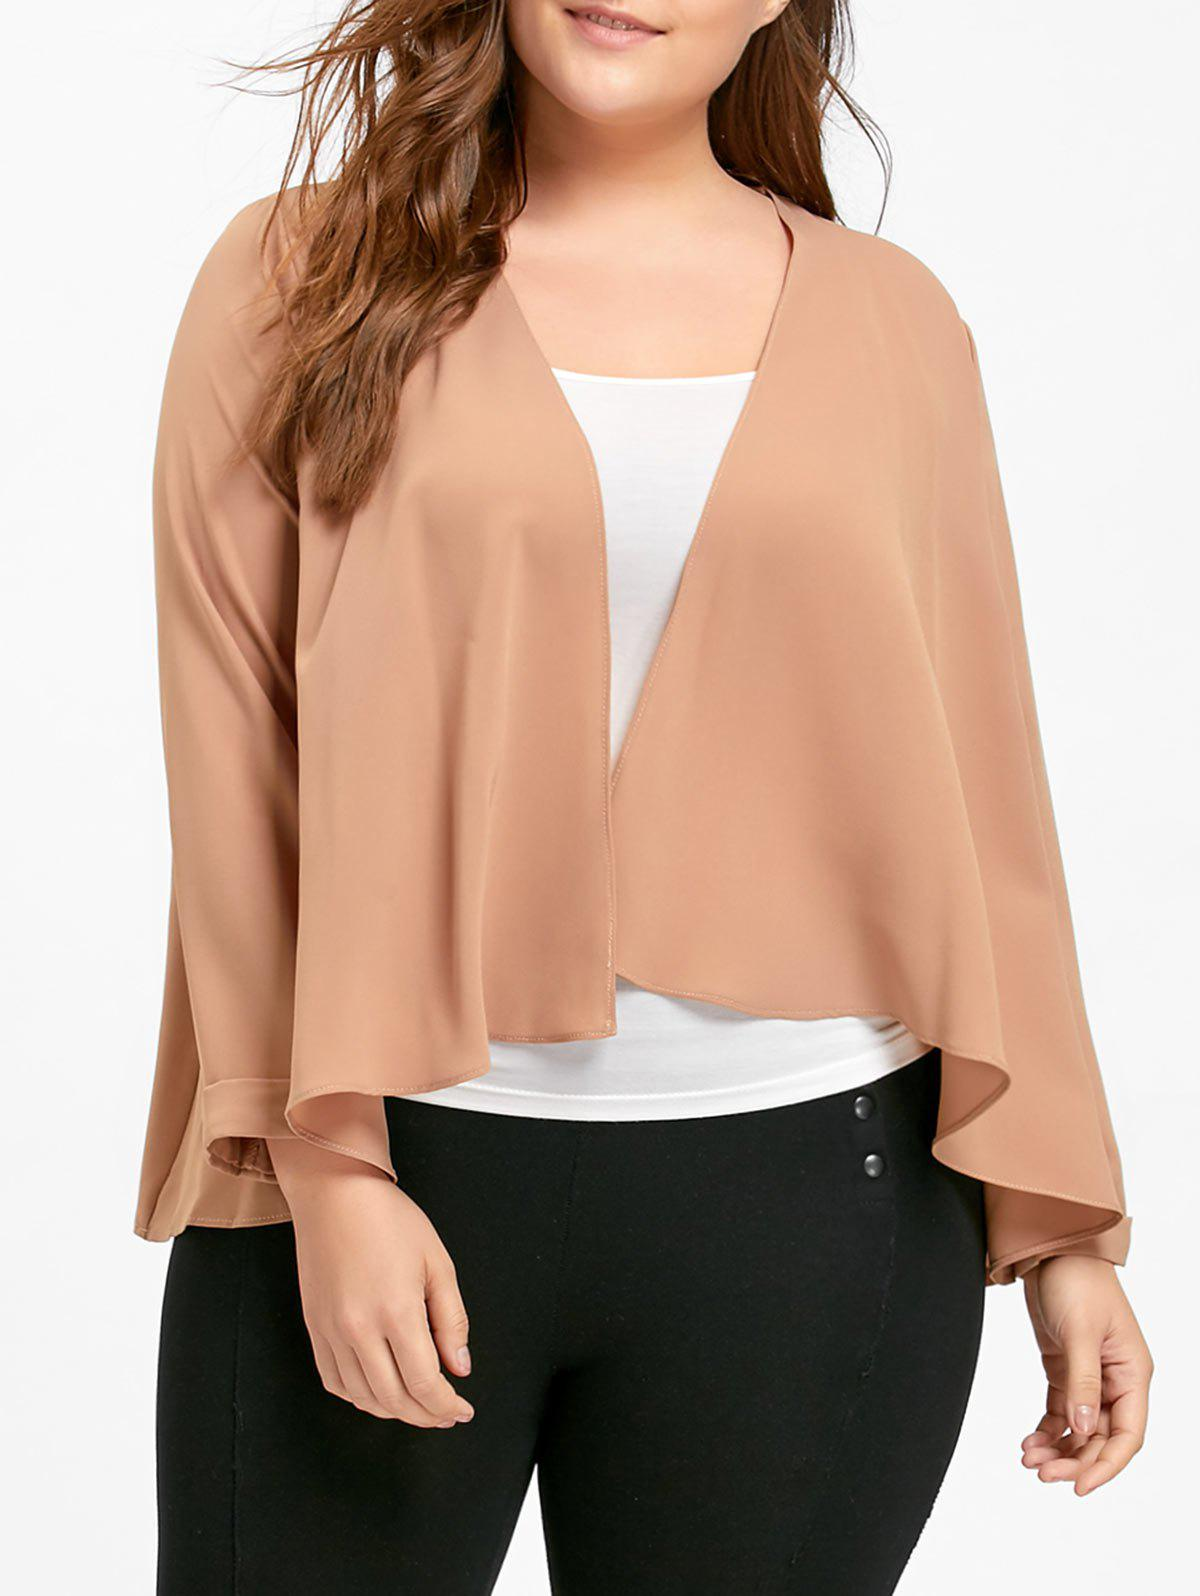 New Chiffon Plus Size Waterfall Jacket